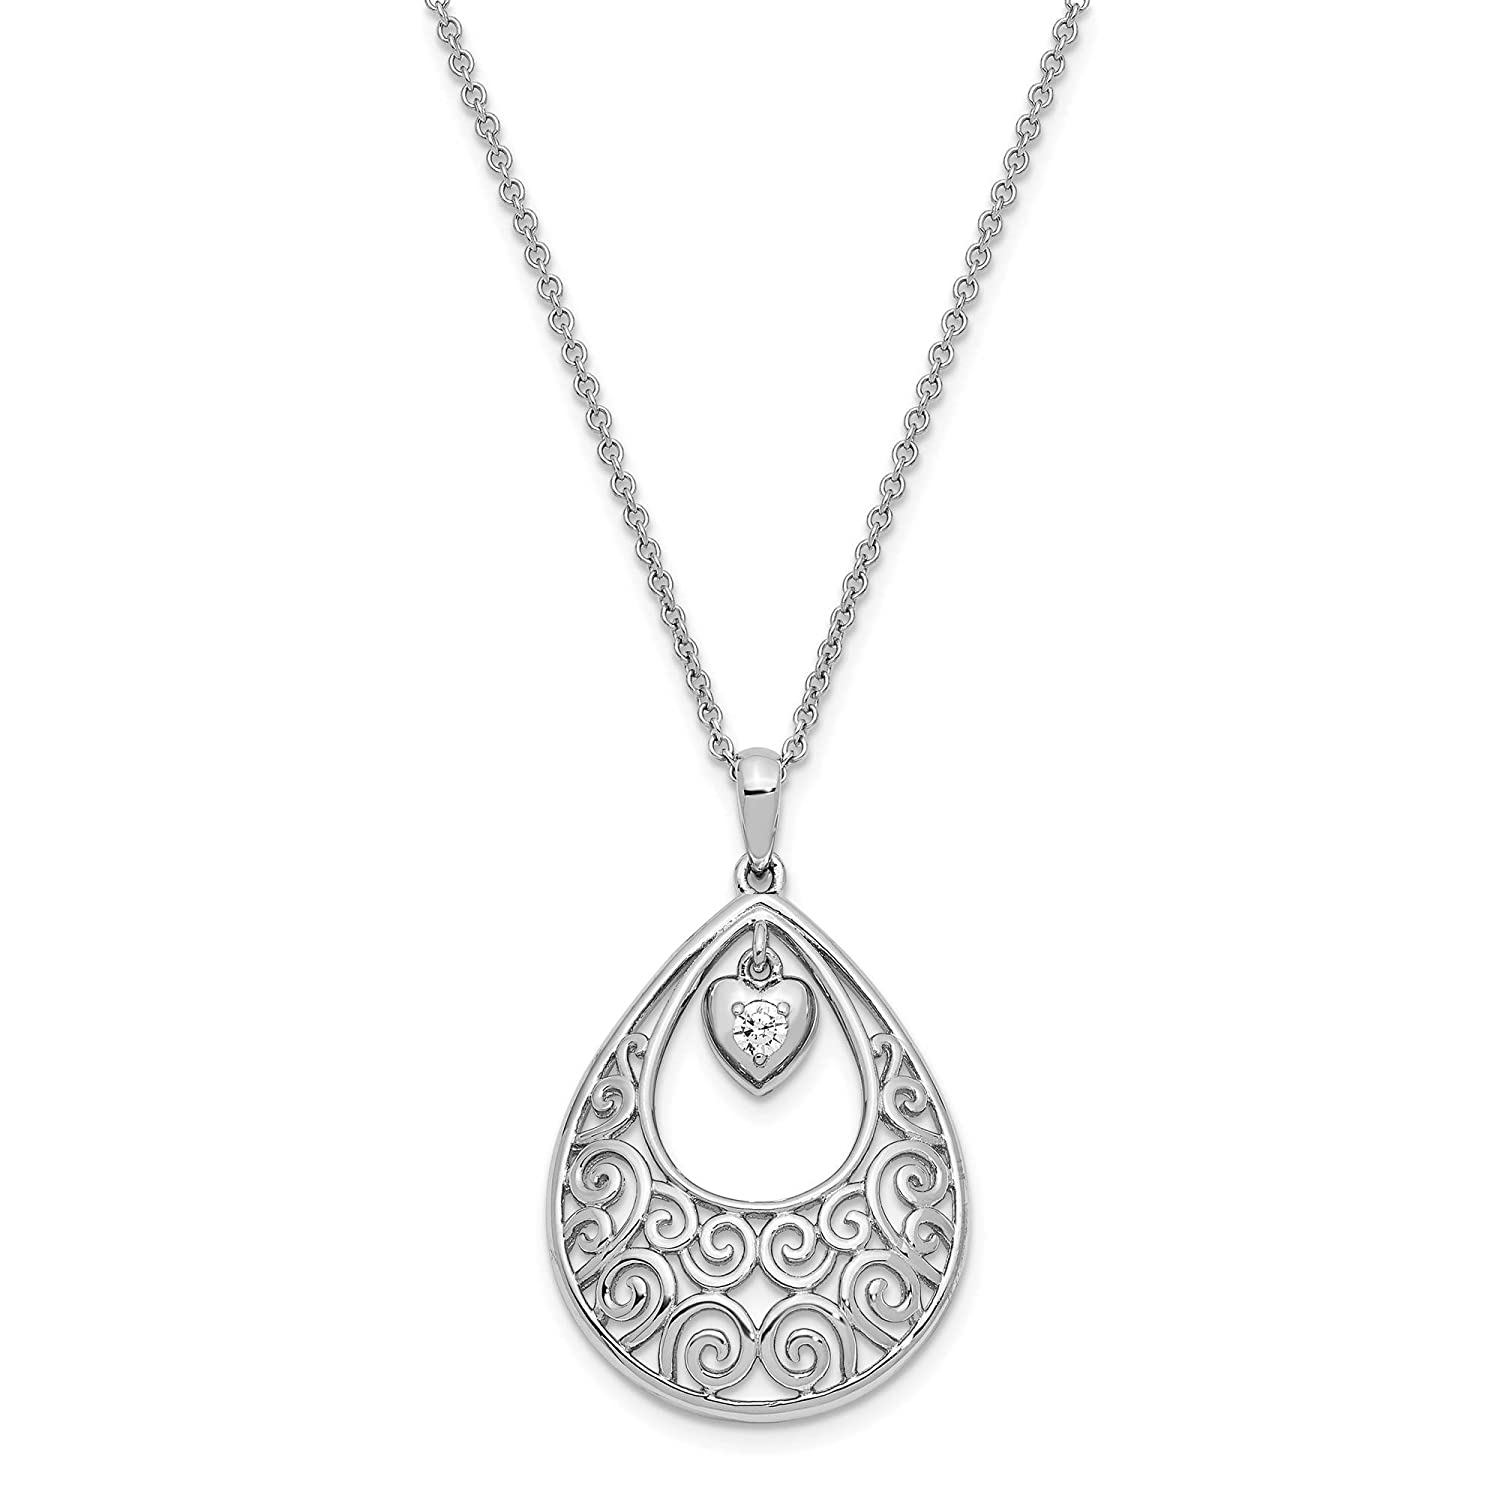 925 Sterling Silver Polished CZ Without You Teardrop Pendant Necklace 18 by Sentimental Expressions